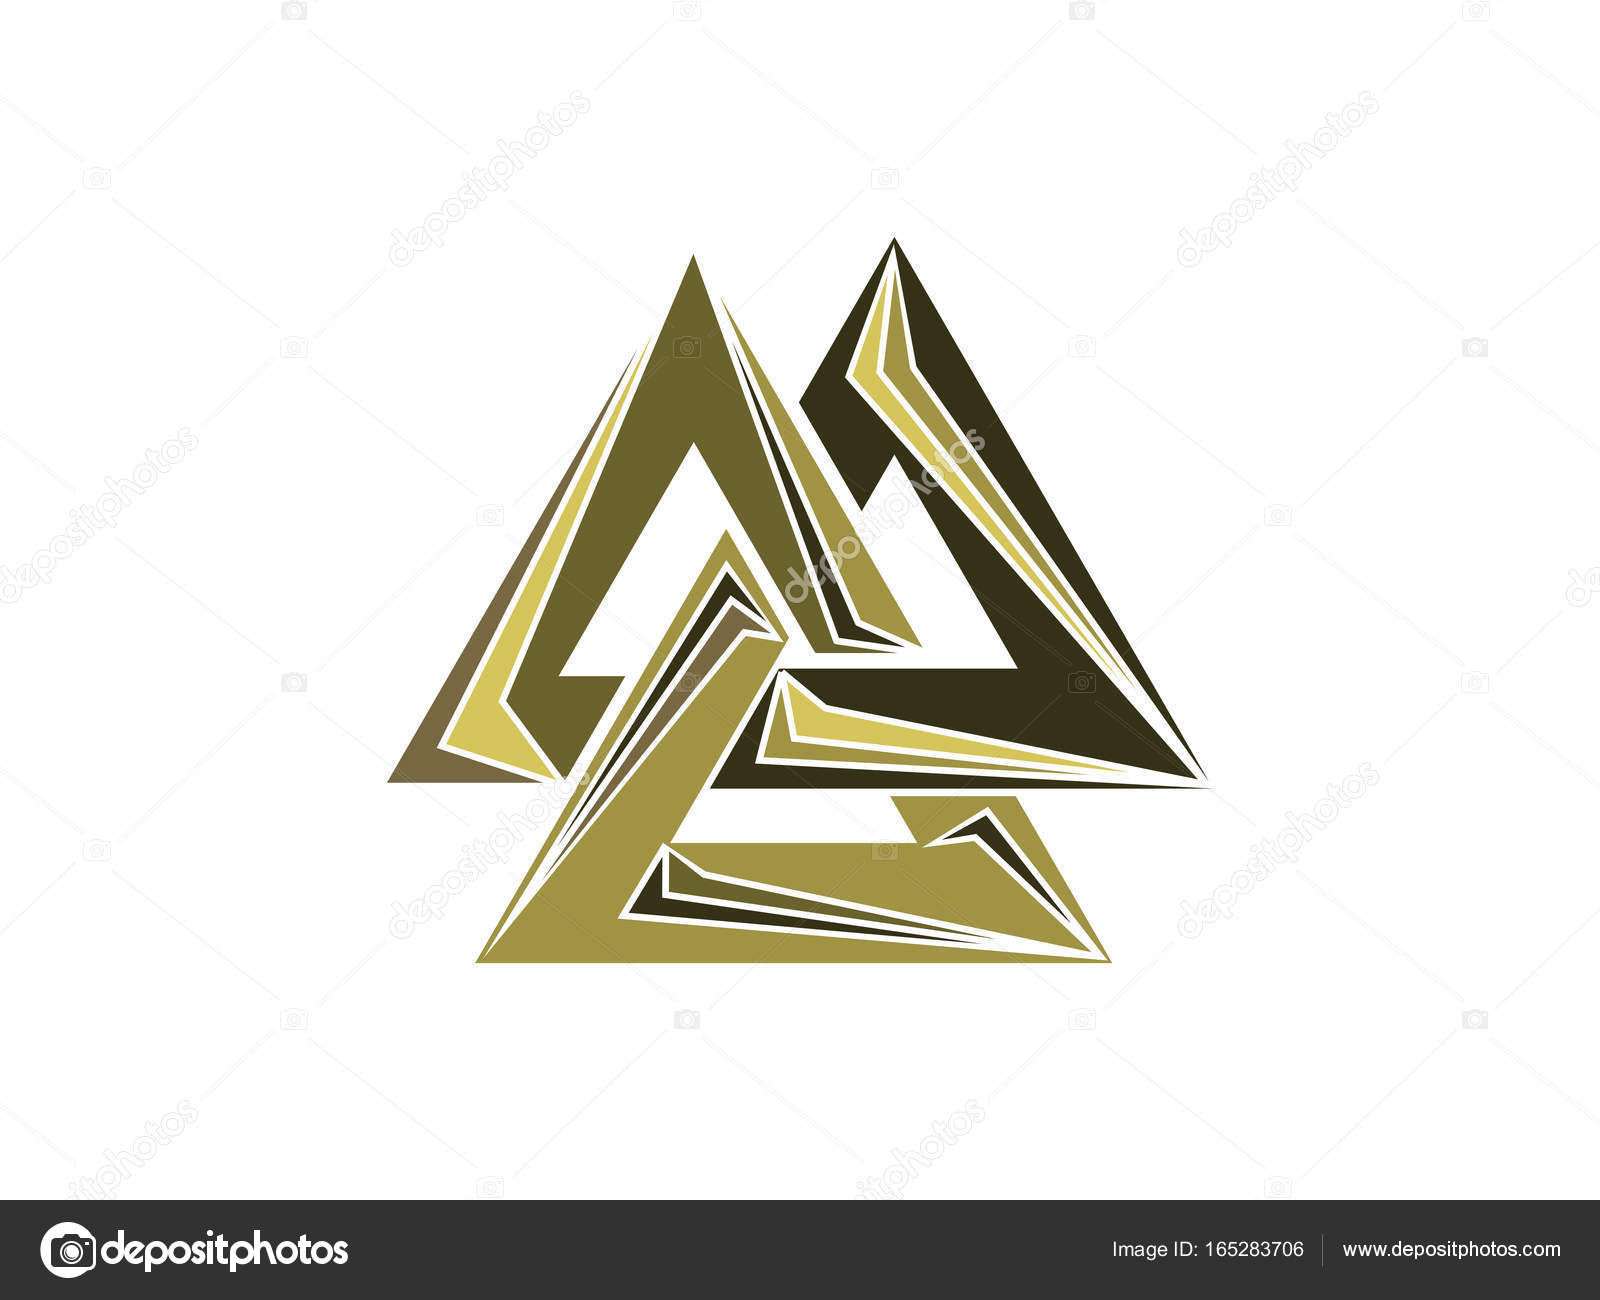 Valknut is a symbol of the worlds end of the tree yggdrasil sign valknut is a symbol of the worlds end of the tree yggdrasil sign of the god odin norse culture triangle logo vector illustration vector by buycottarizona